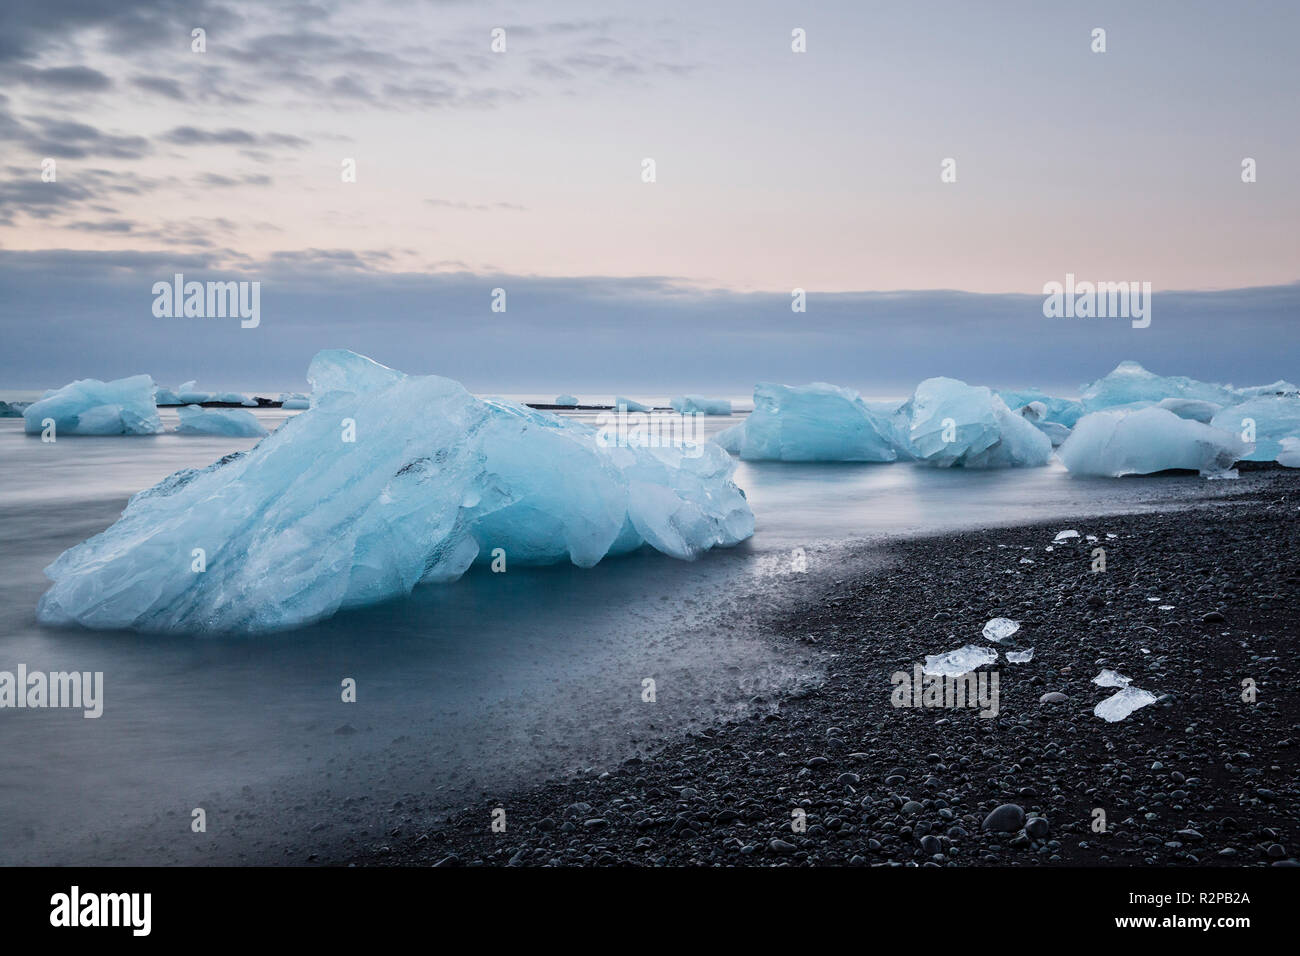 Blue shimmering blocks of ice in blurred water on black beach at Jökulsárlón (Diamond Beach), Iceland, morning mood Stock Photo